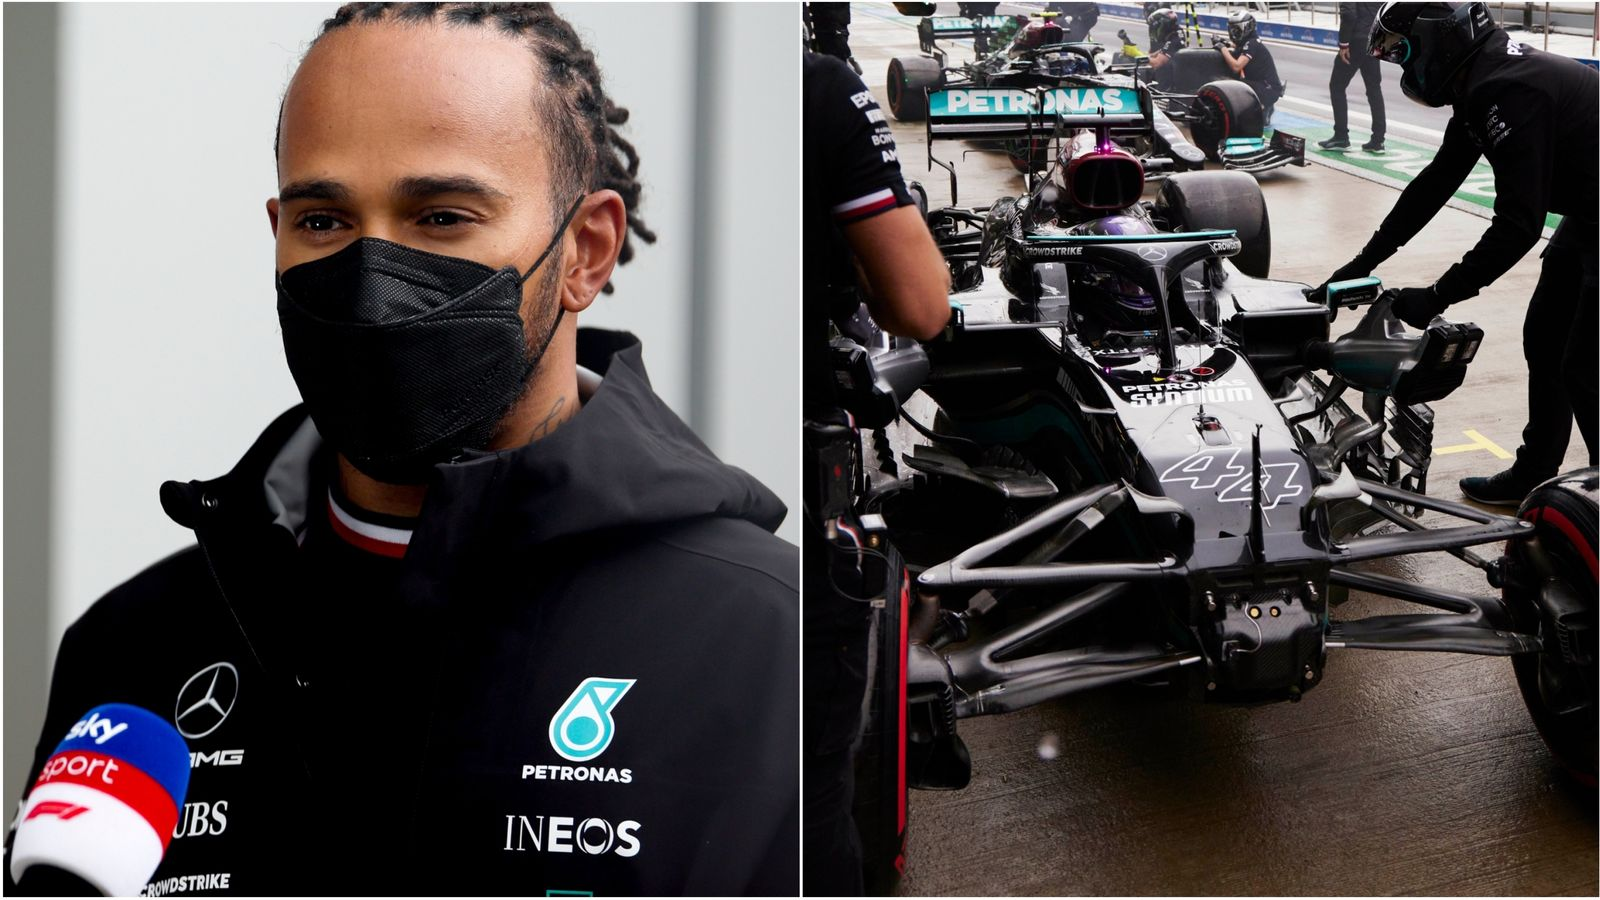 Russian GP: Lewis Hamilton says mistakes 'not what you expect from a champion' after dropping to fourth in qualifying